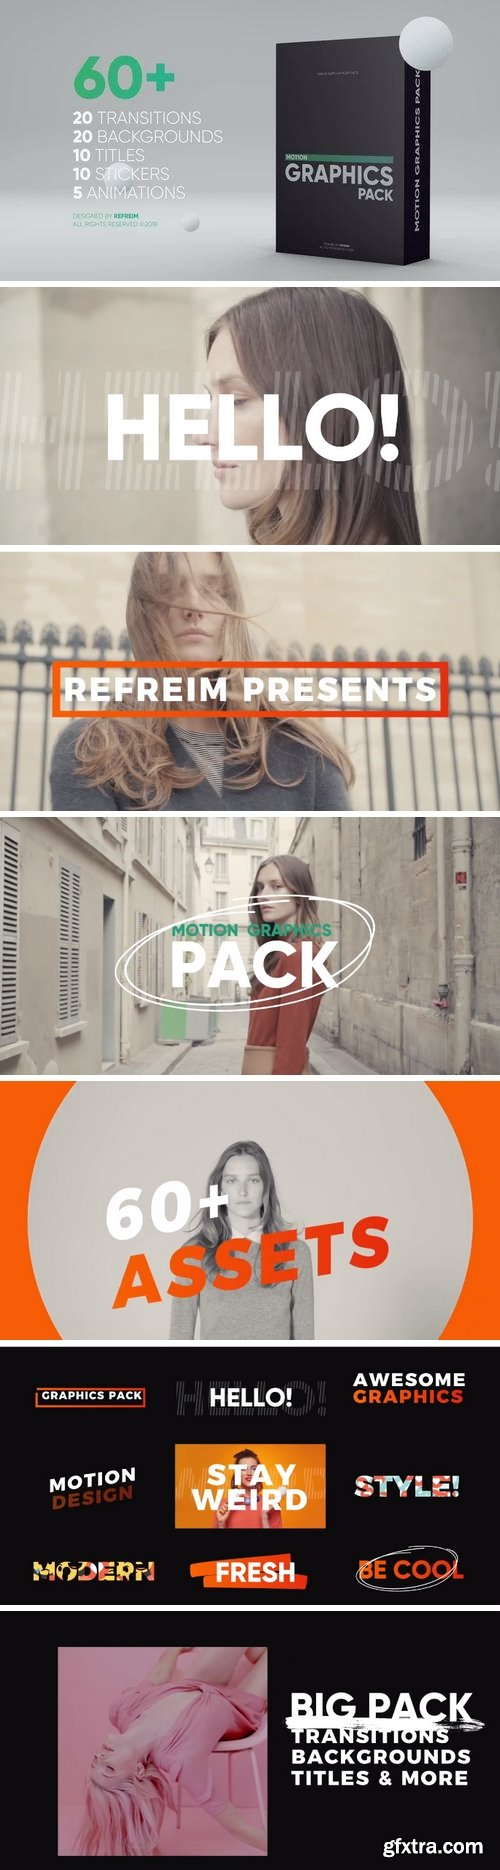 MA - Motion Graphics Pack After Effects Templates 146885